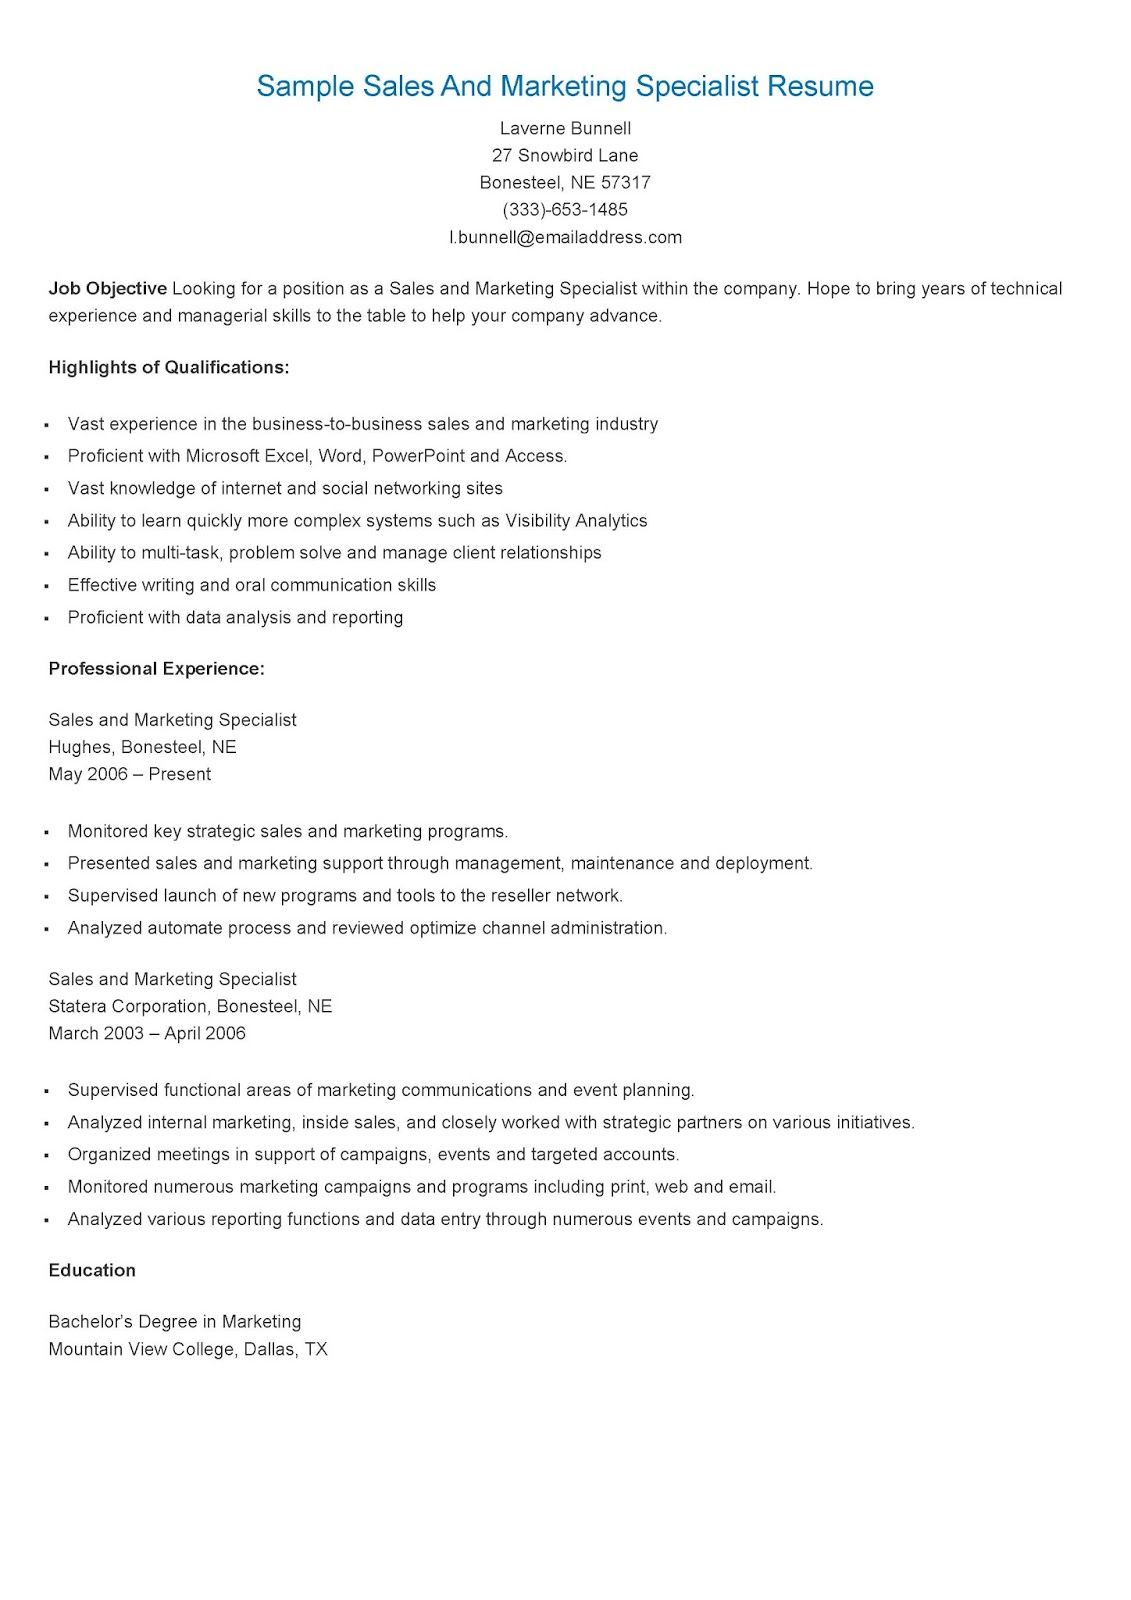 resume samples  sample sales and marketing specialist resume